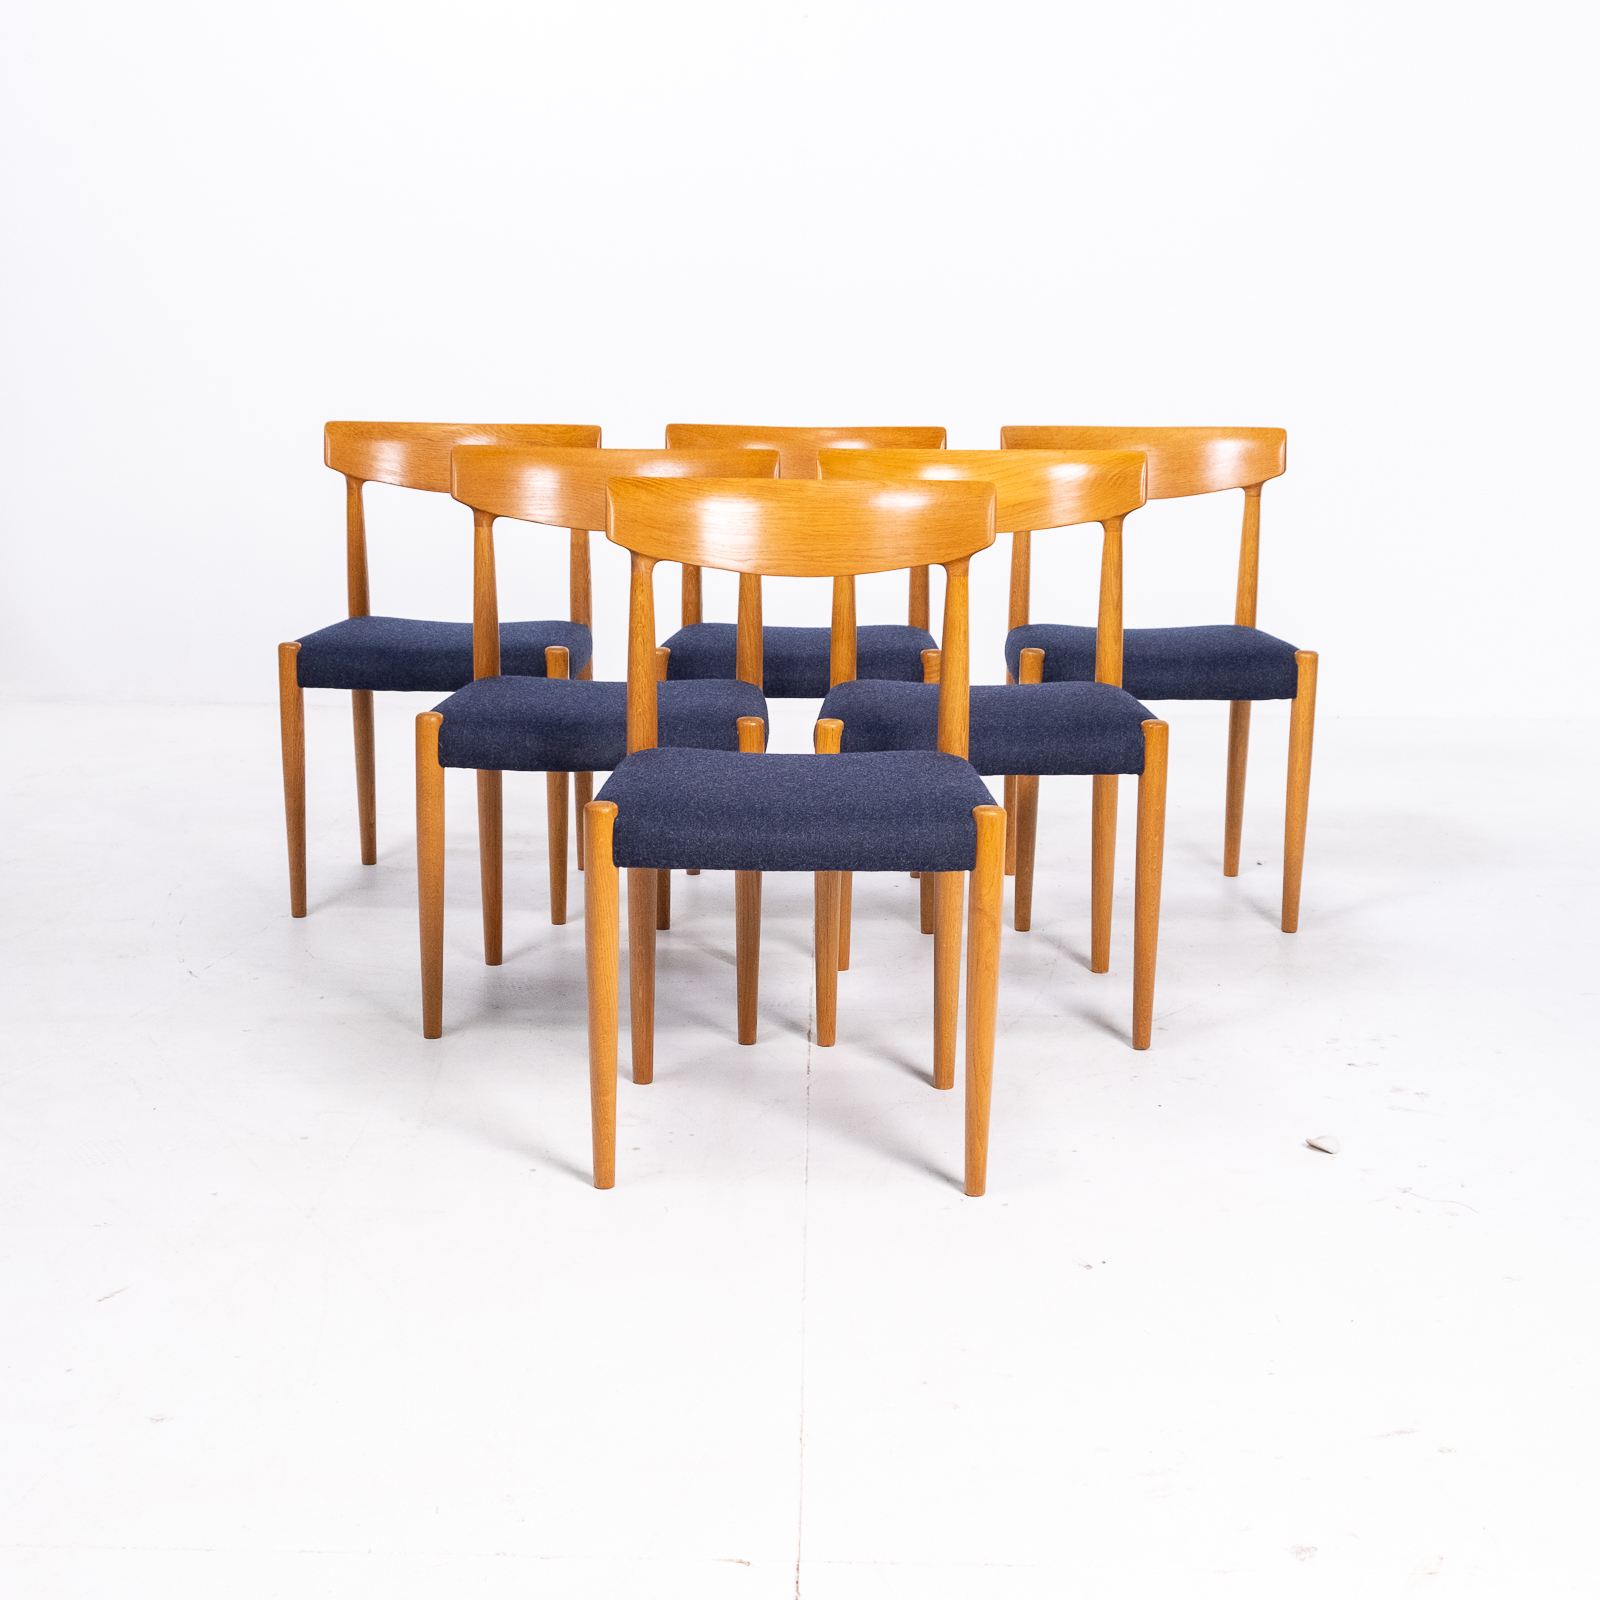 Set Of 6 Dining Chairs By Borge Mogensen For Fdb Mobler In Oak, 1960s, Denmark 00011